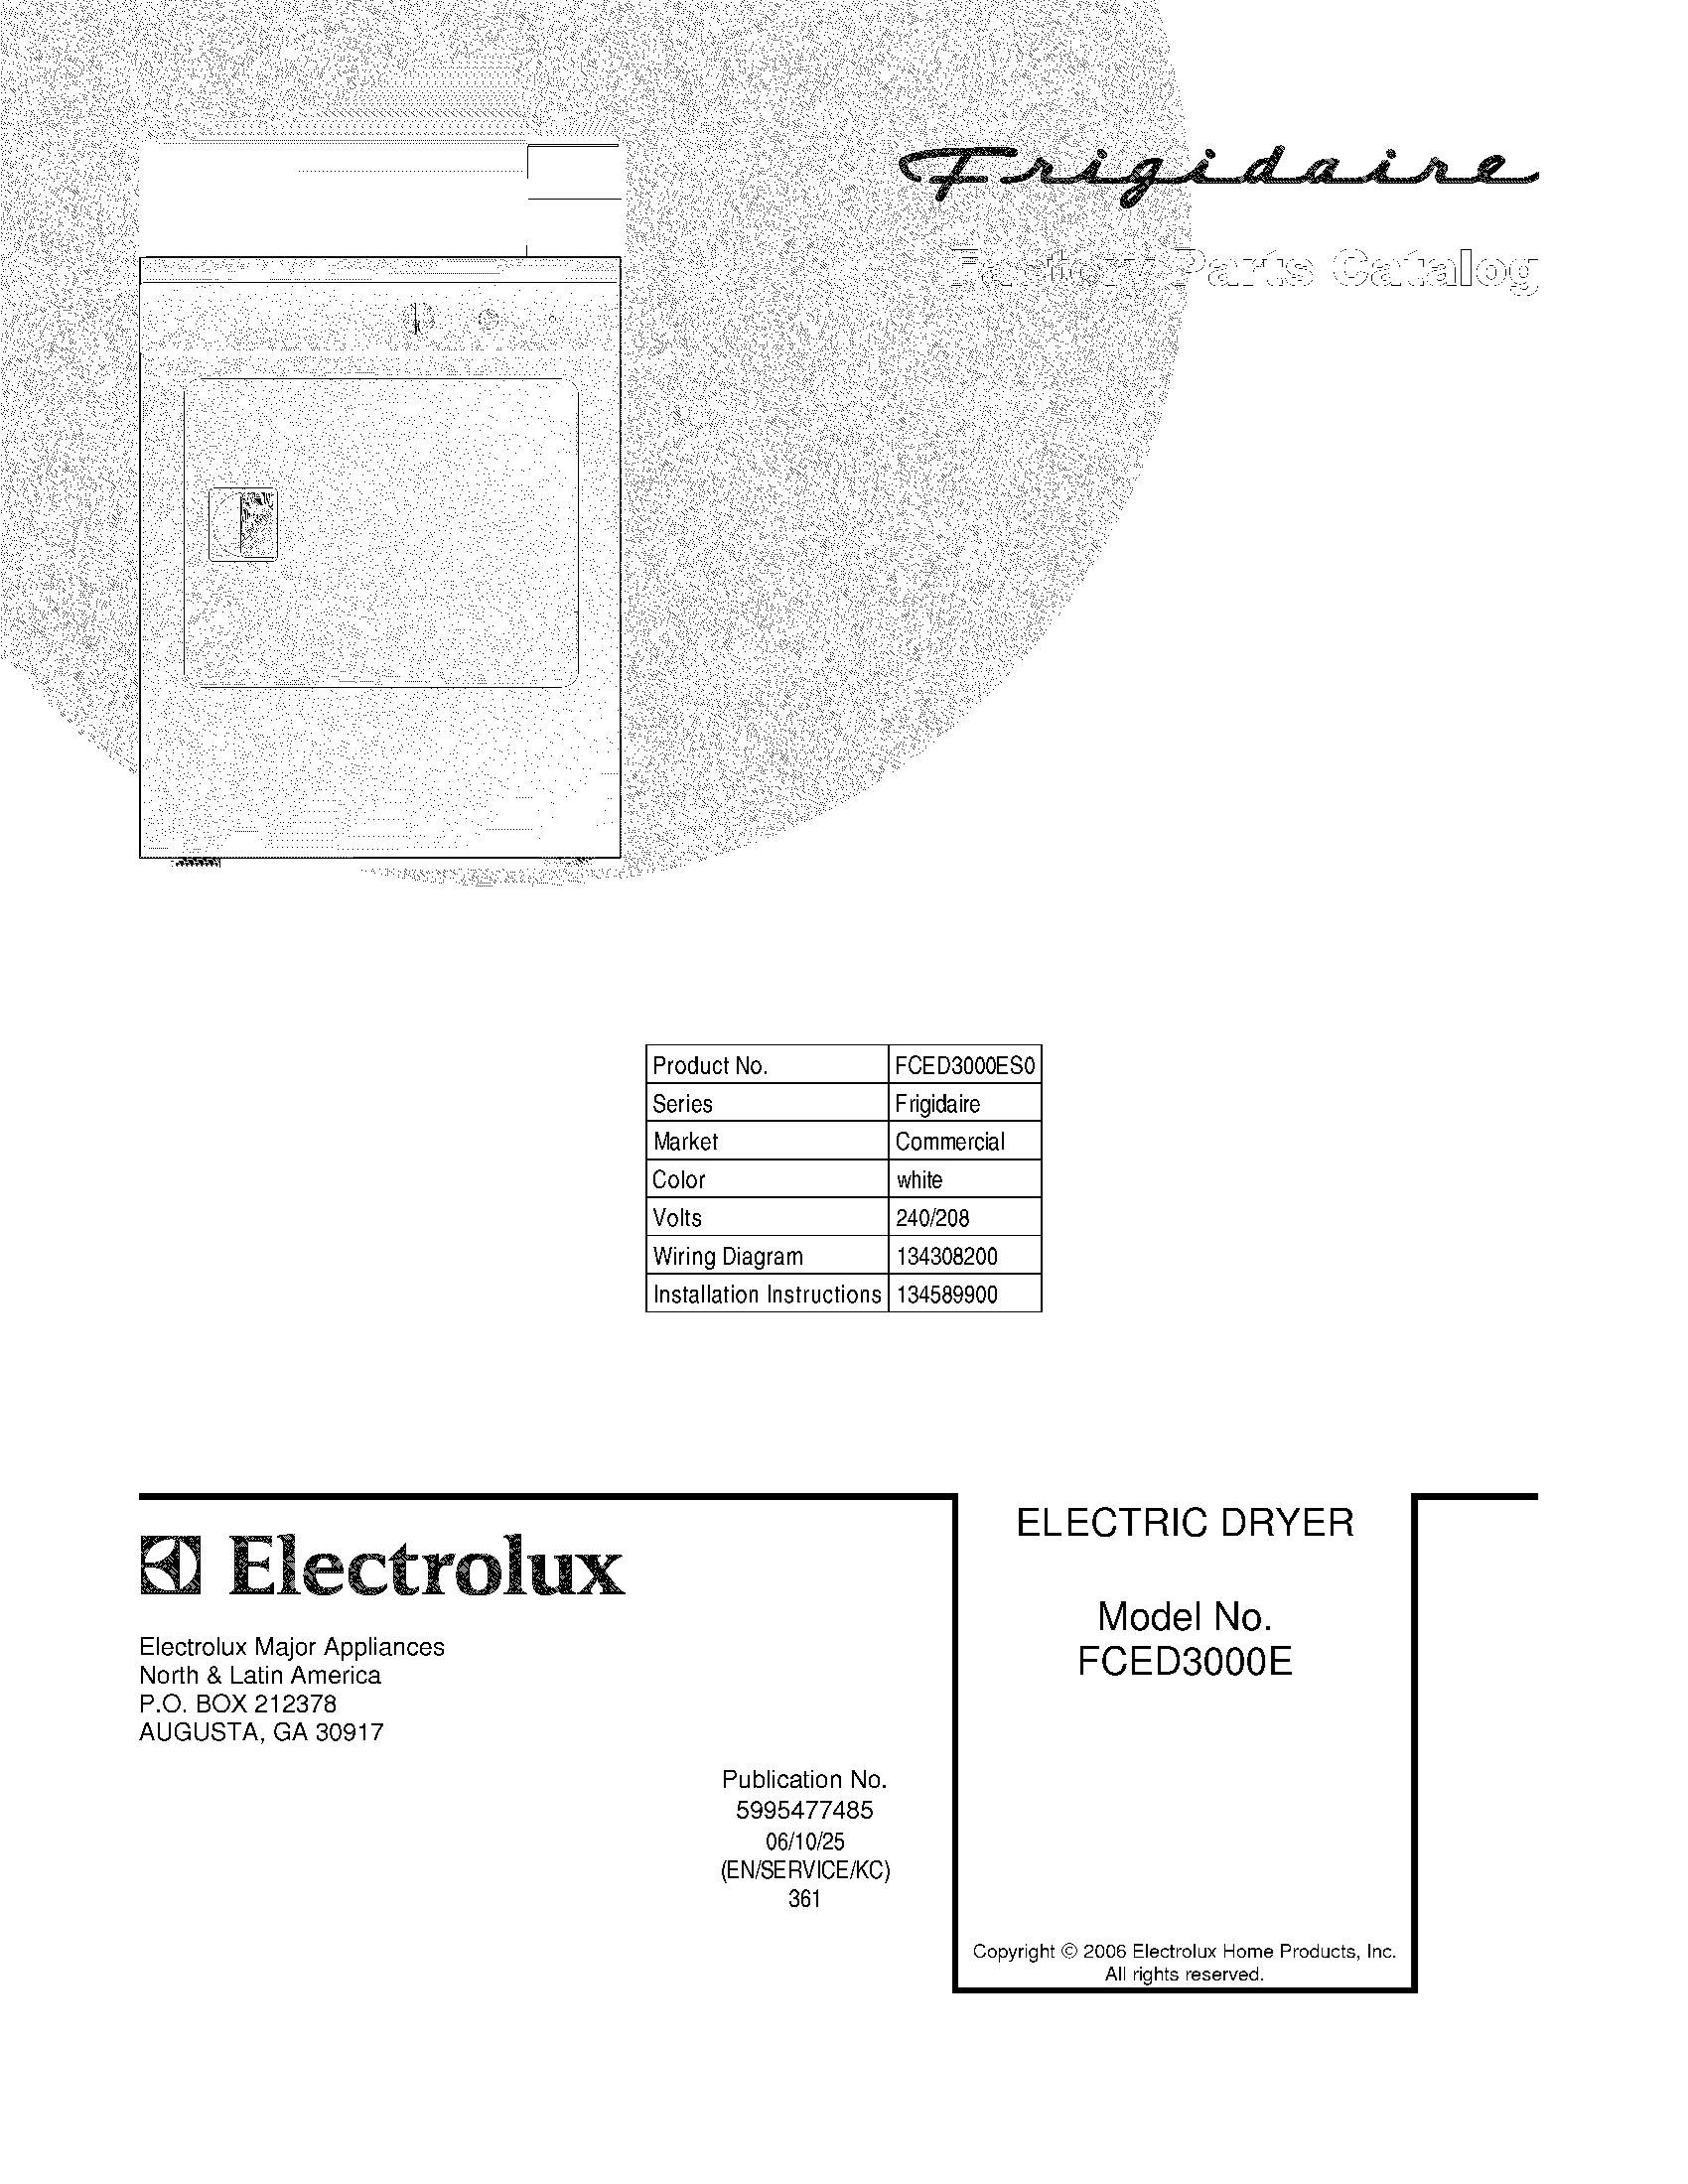 ElectroluxImg_19000101 20150717_00041943?width\=1000 wire diagram frigidaire coin op dryer ge dryer parts diagram  at cos-gaming.co